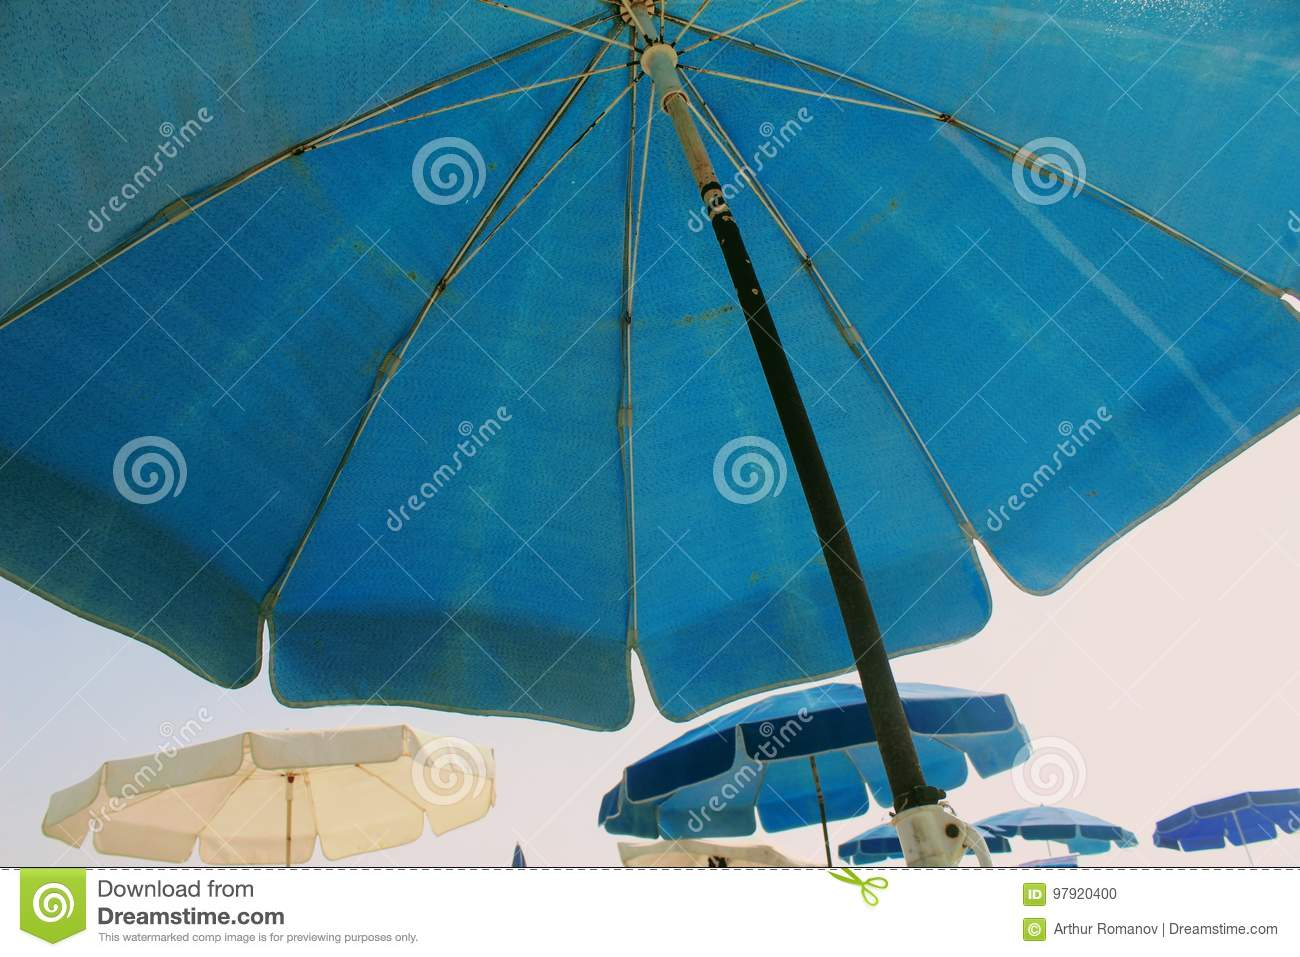 A Beach Umbrella P Ographed From Below On The Background Of Other Beach Umbrellas